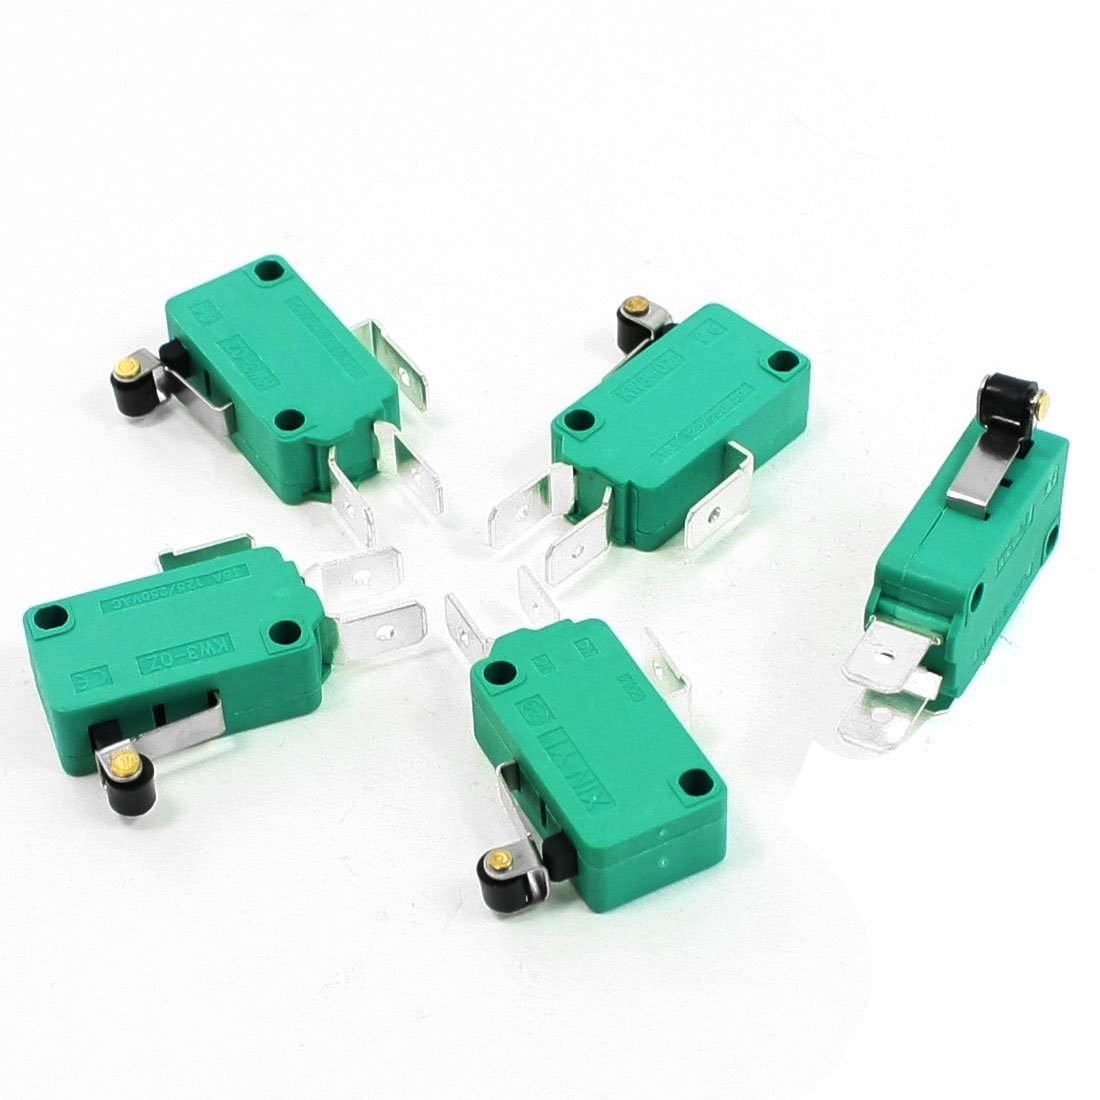 5 Pcs AC 250V 16A SPDT 3 Terminals Short Hinge Roller Lever Limit Micro Switch Green